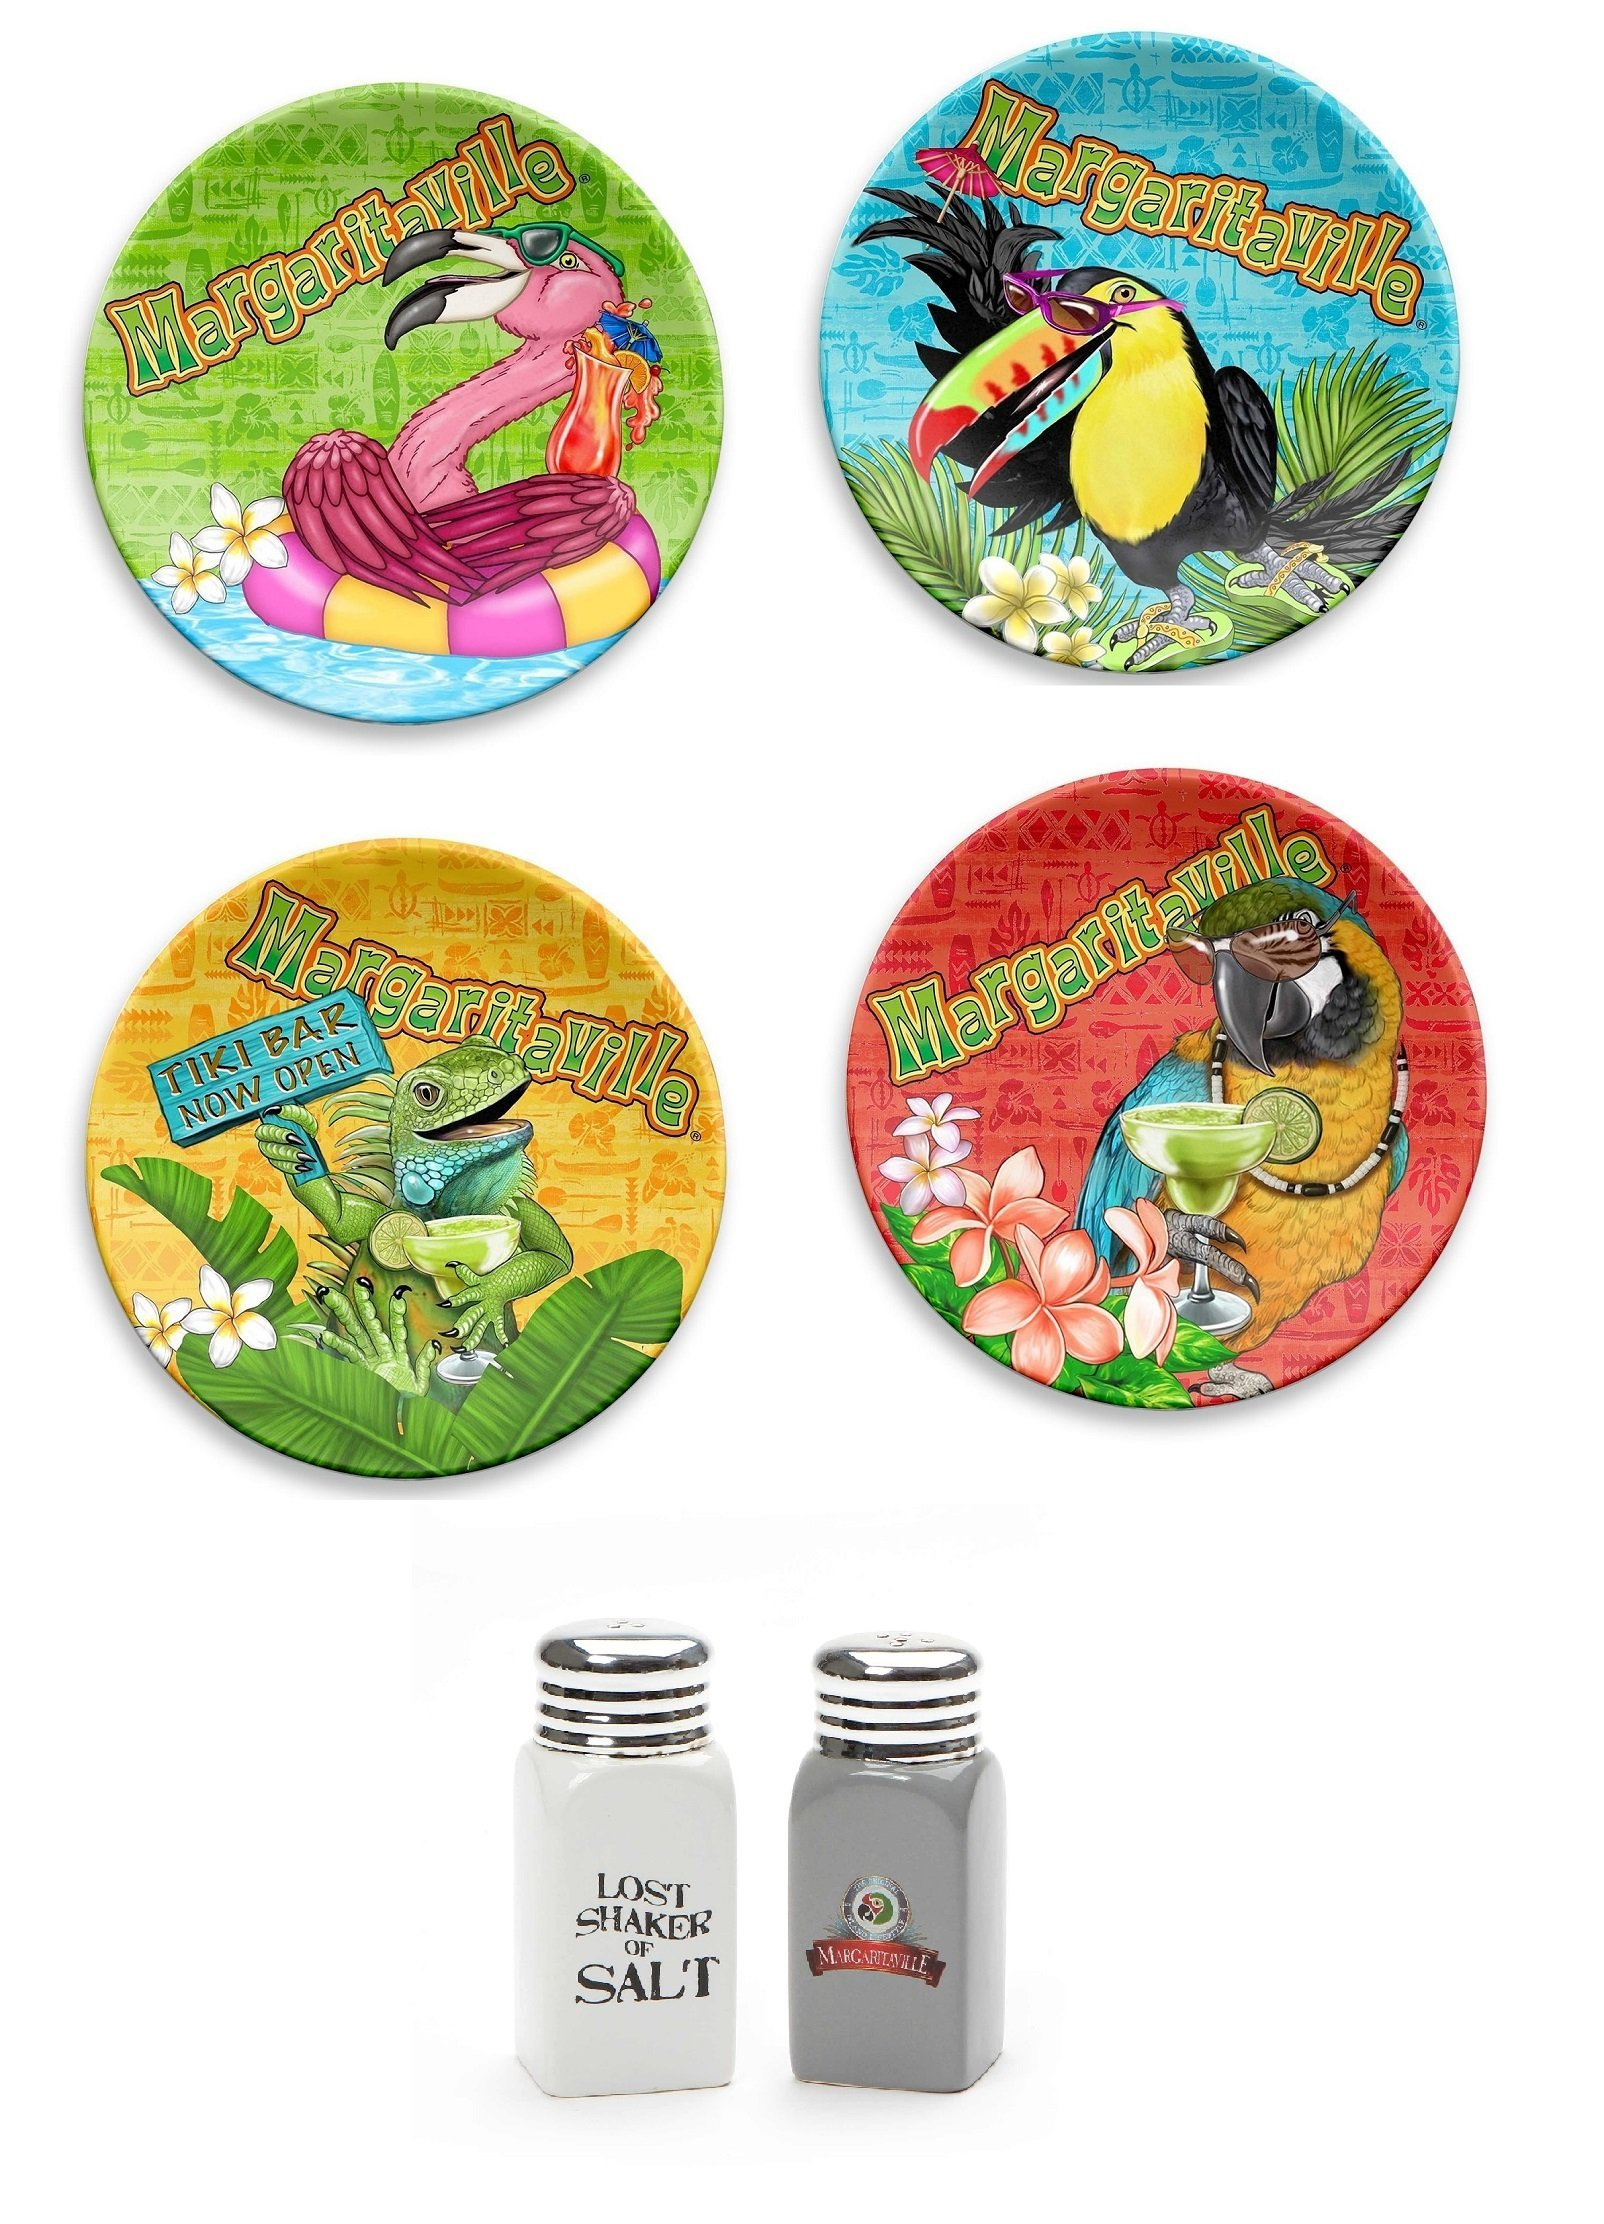 Margaritaville Snack Plates bundle with Lost Shaker of Salt and Pepper Shakers